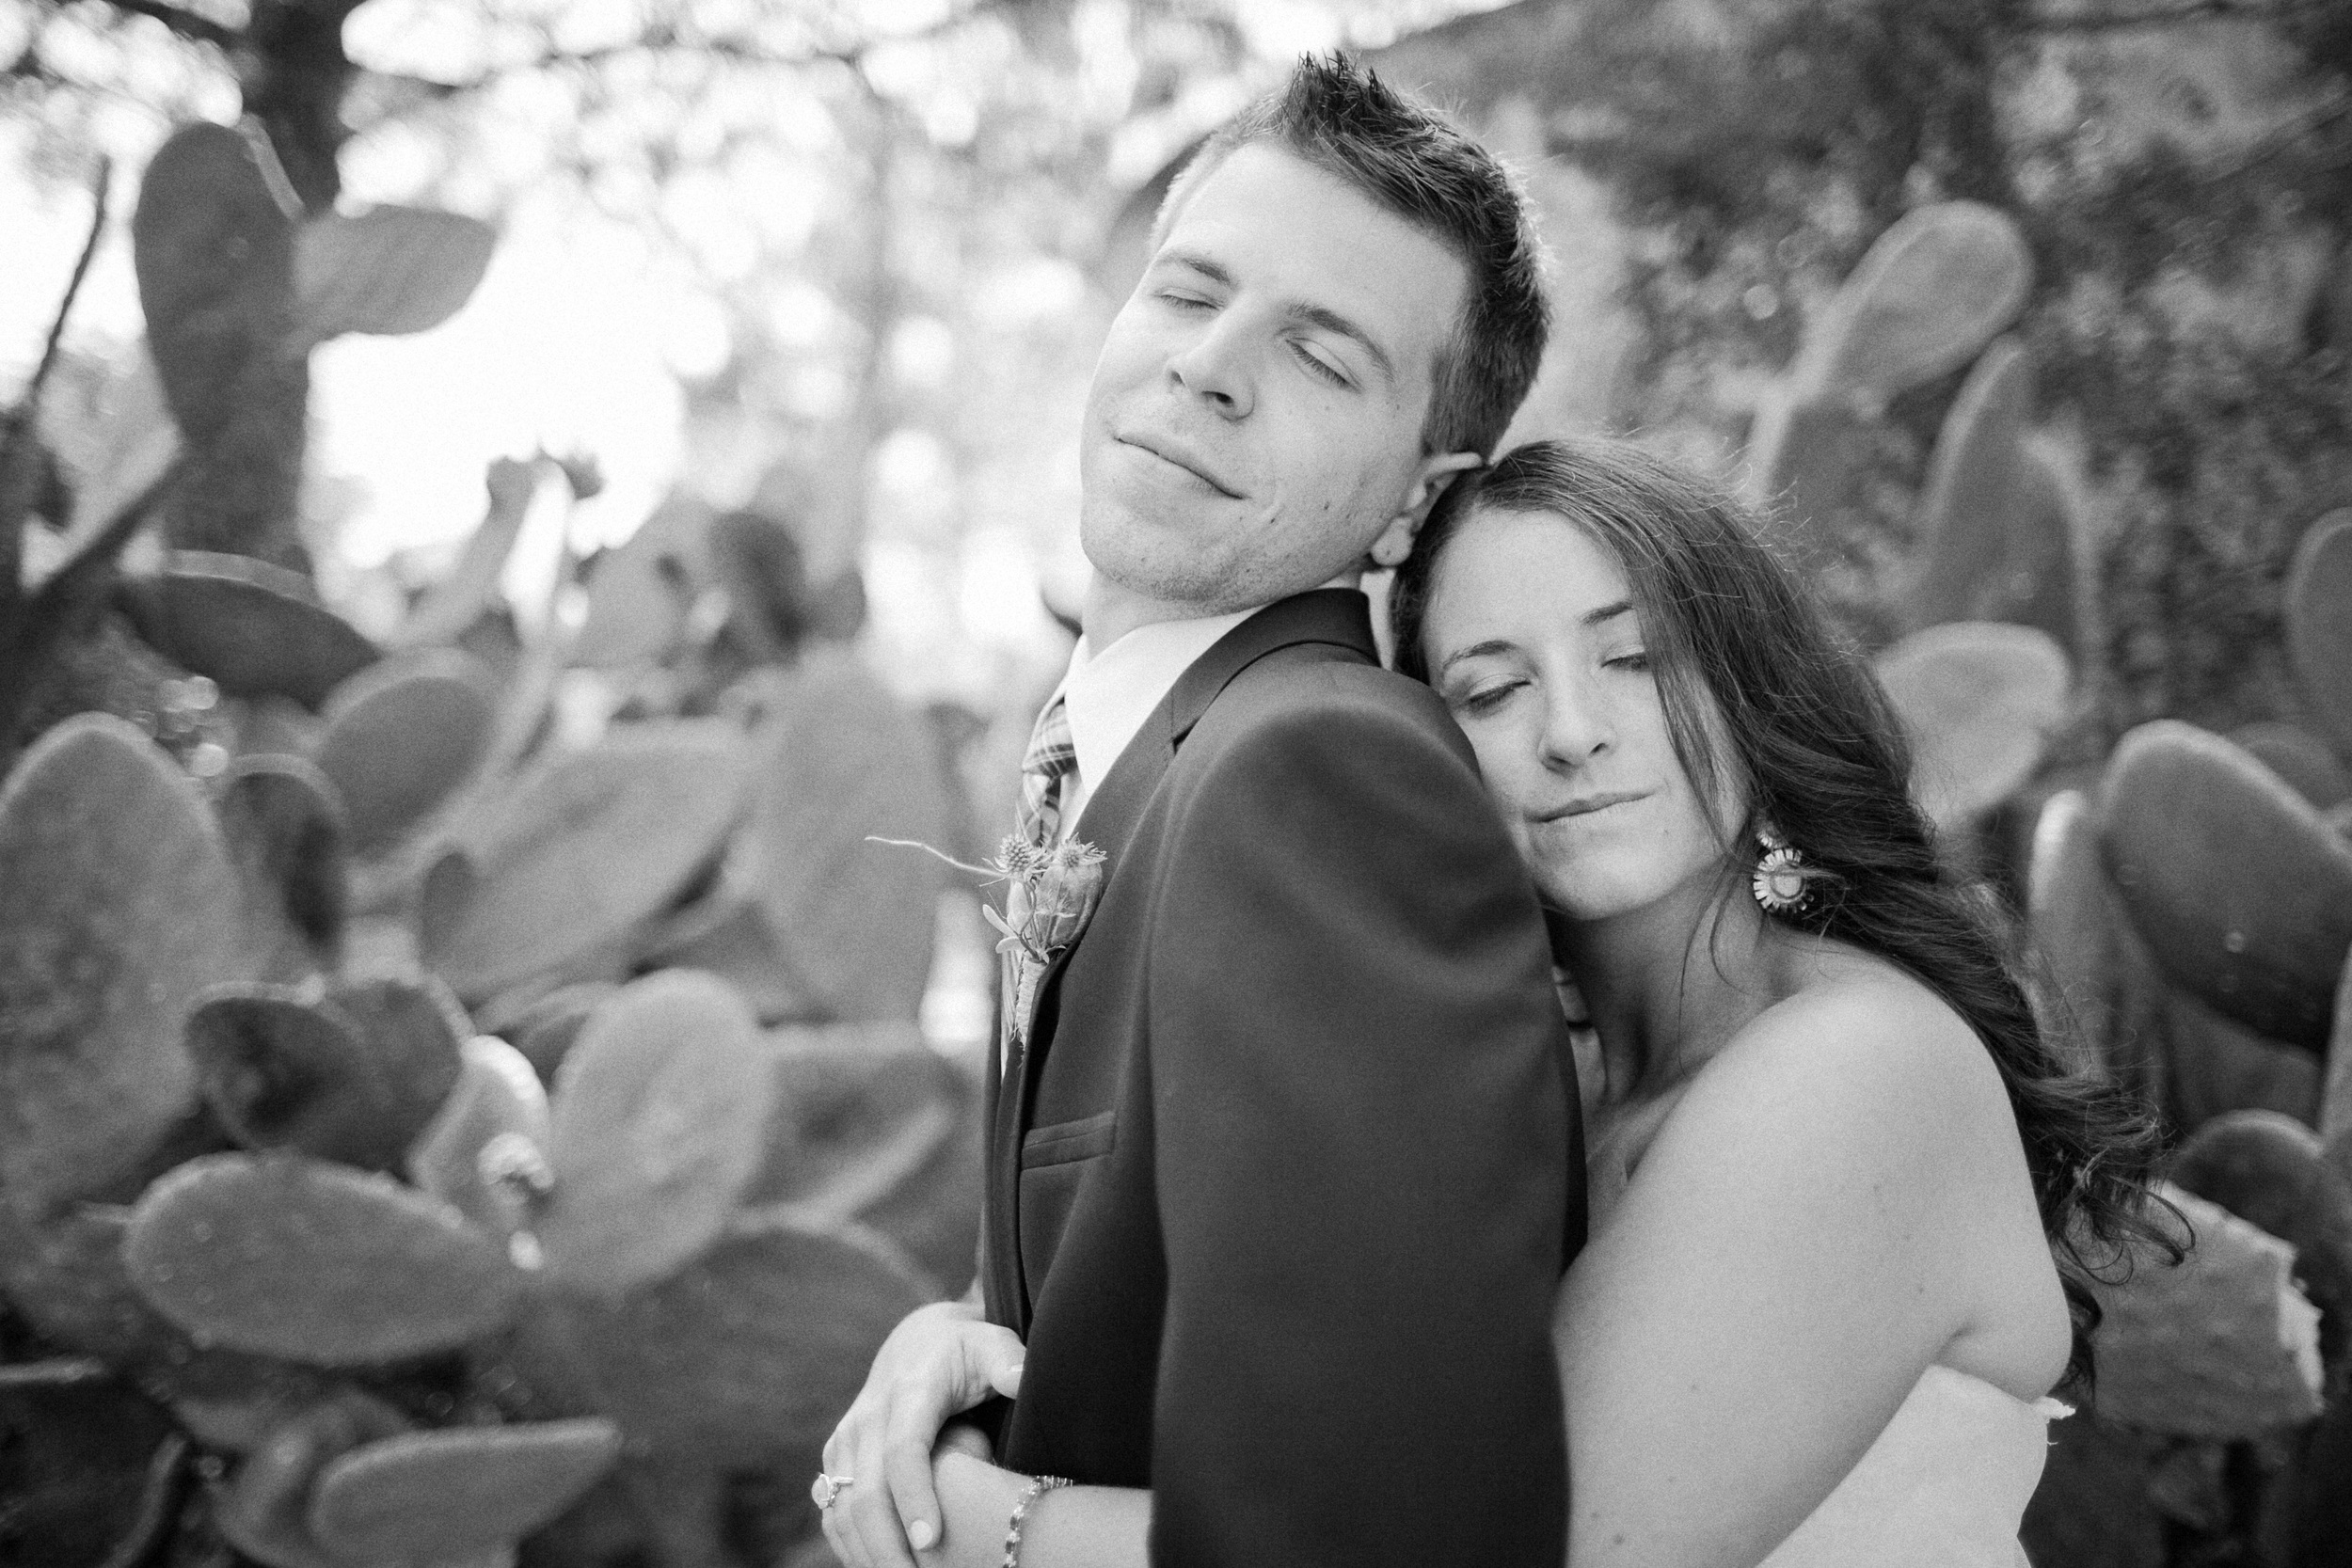 Malibu wedding photographer